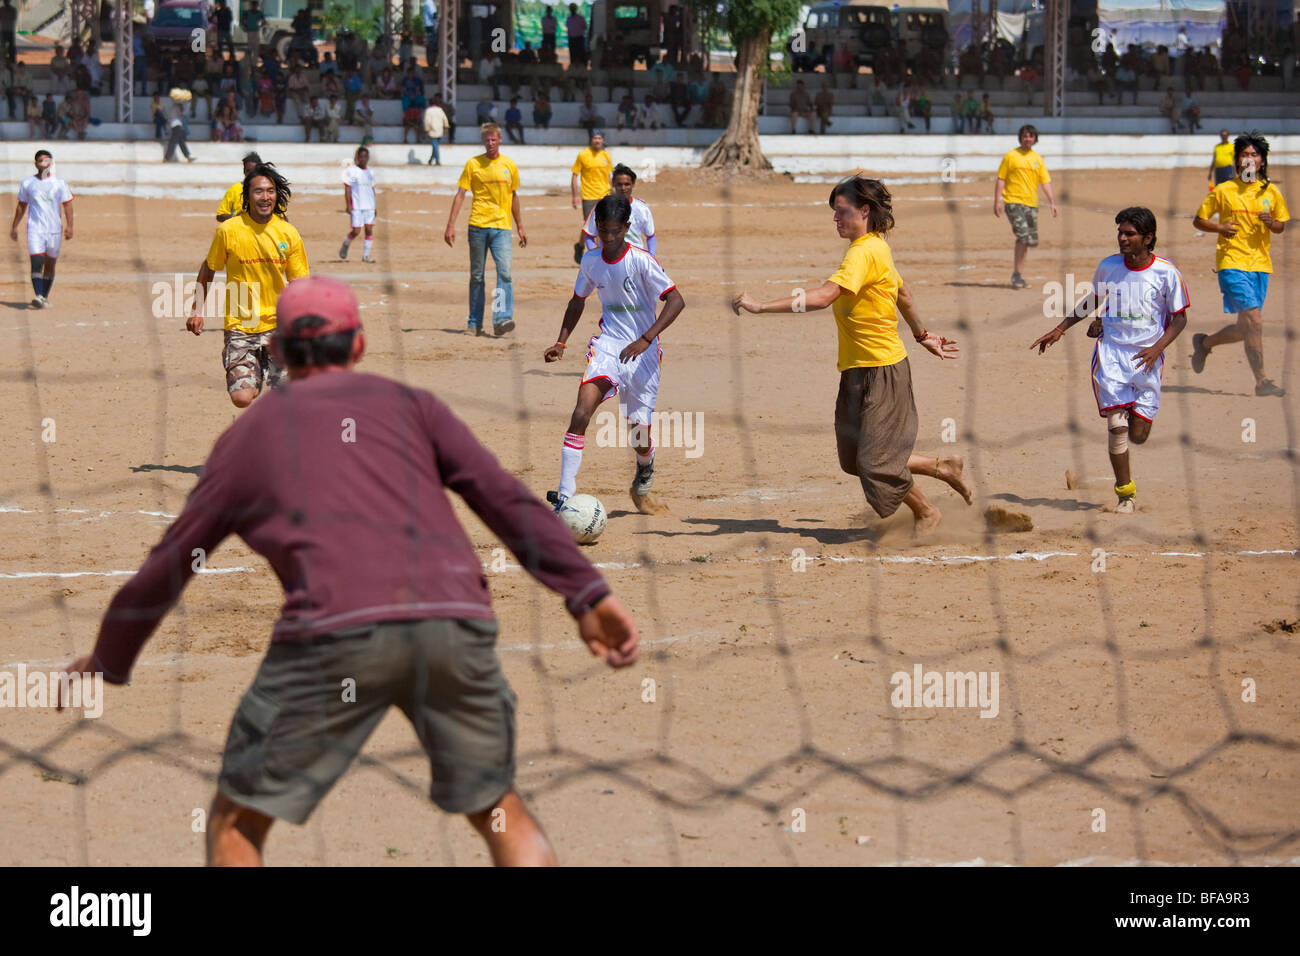 Foreigner vs the Locals Chak de Rajasthan Football Match at the Camel Fair in Pushkar India (3 to 2, visitors) - Stock Image